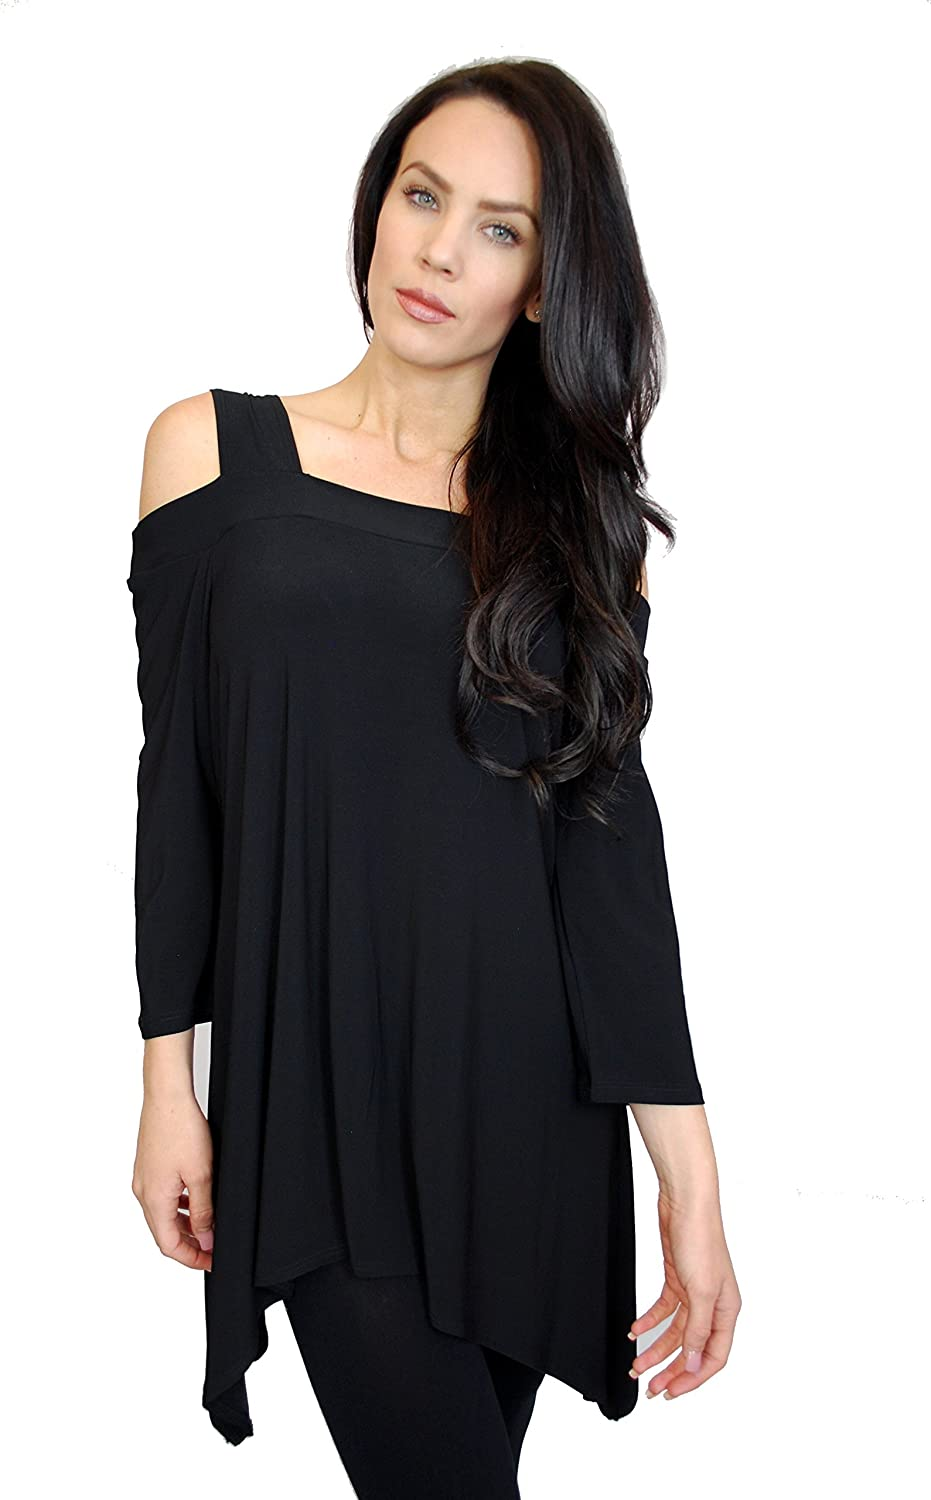 942831d9ec799 Womens Asymmetrical Cold Shoulder Cut Outs Tunic Fashion Top at Amazon  Women s Clothing store